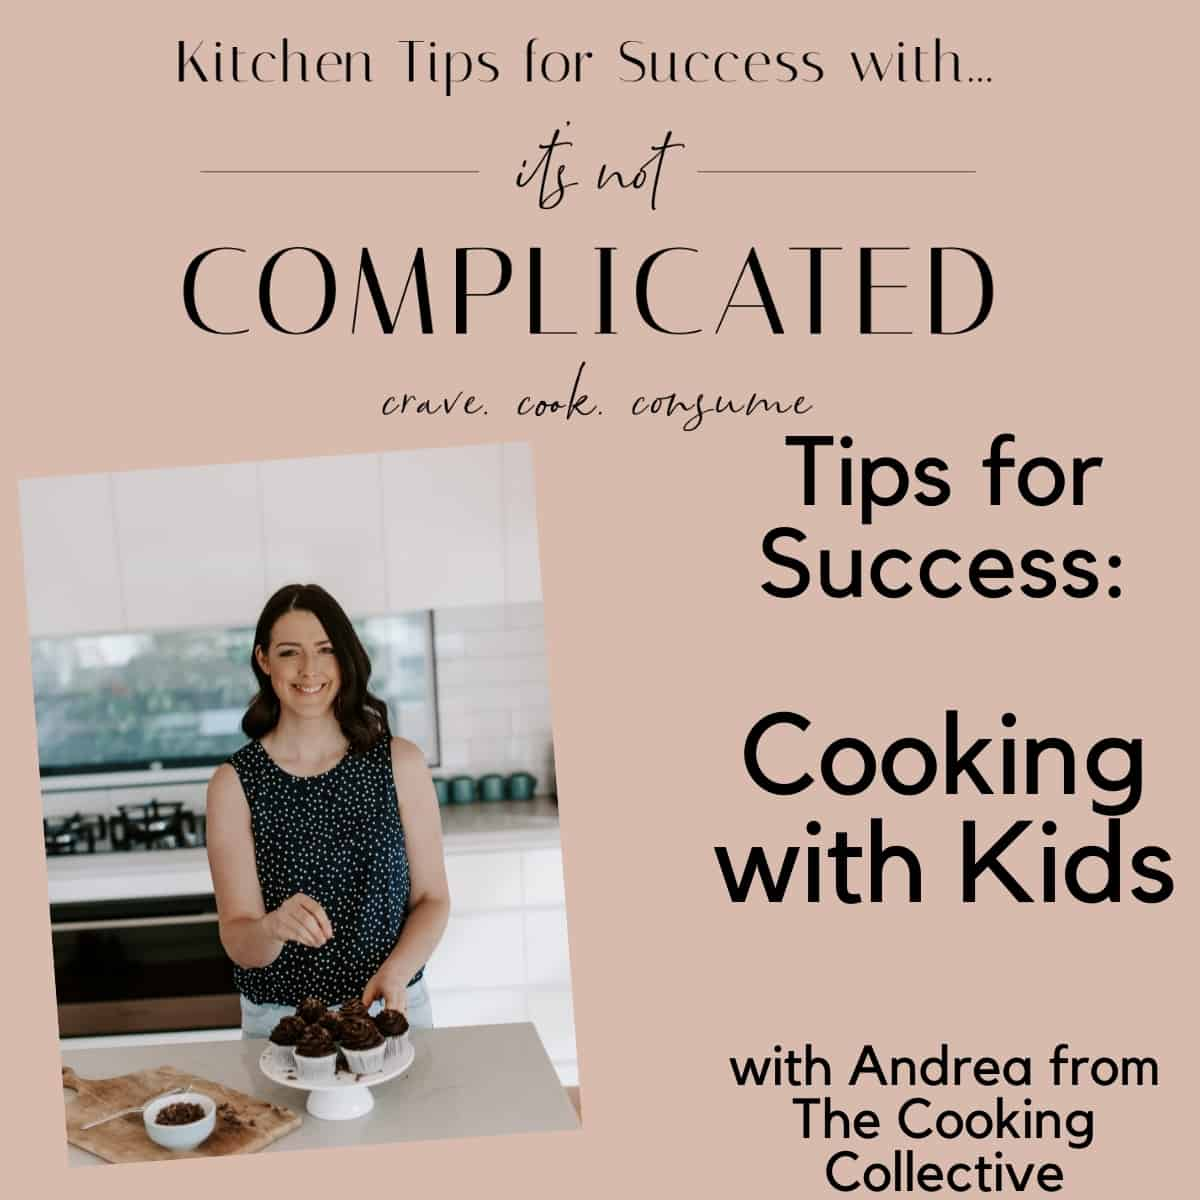 poster of cooking with kids, image of guest blogger and text overlay.